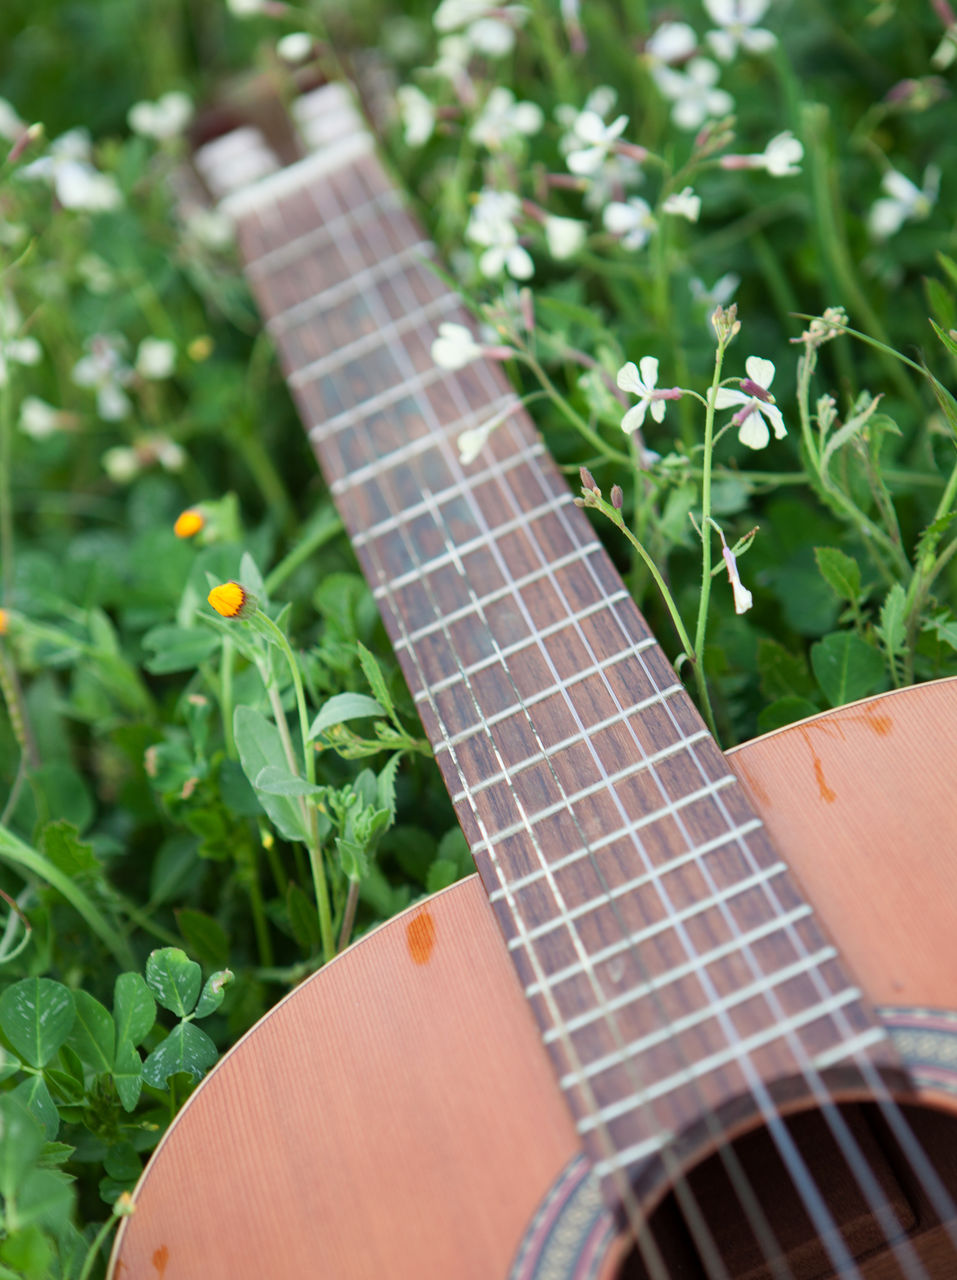 plant, growth, green color, close-up, string instrument, nature, leaf, musical instrument, plant part, day, music, no people, selective focus, guitar, acoustic guitar, outdoors, musical equipment, focus on foreground, arts culture and entertainment, beauty in nature